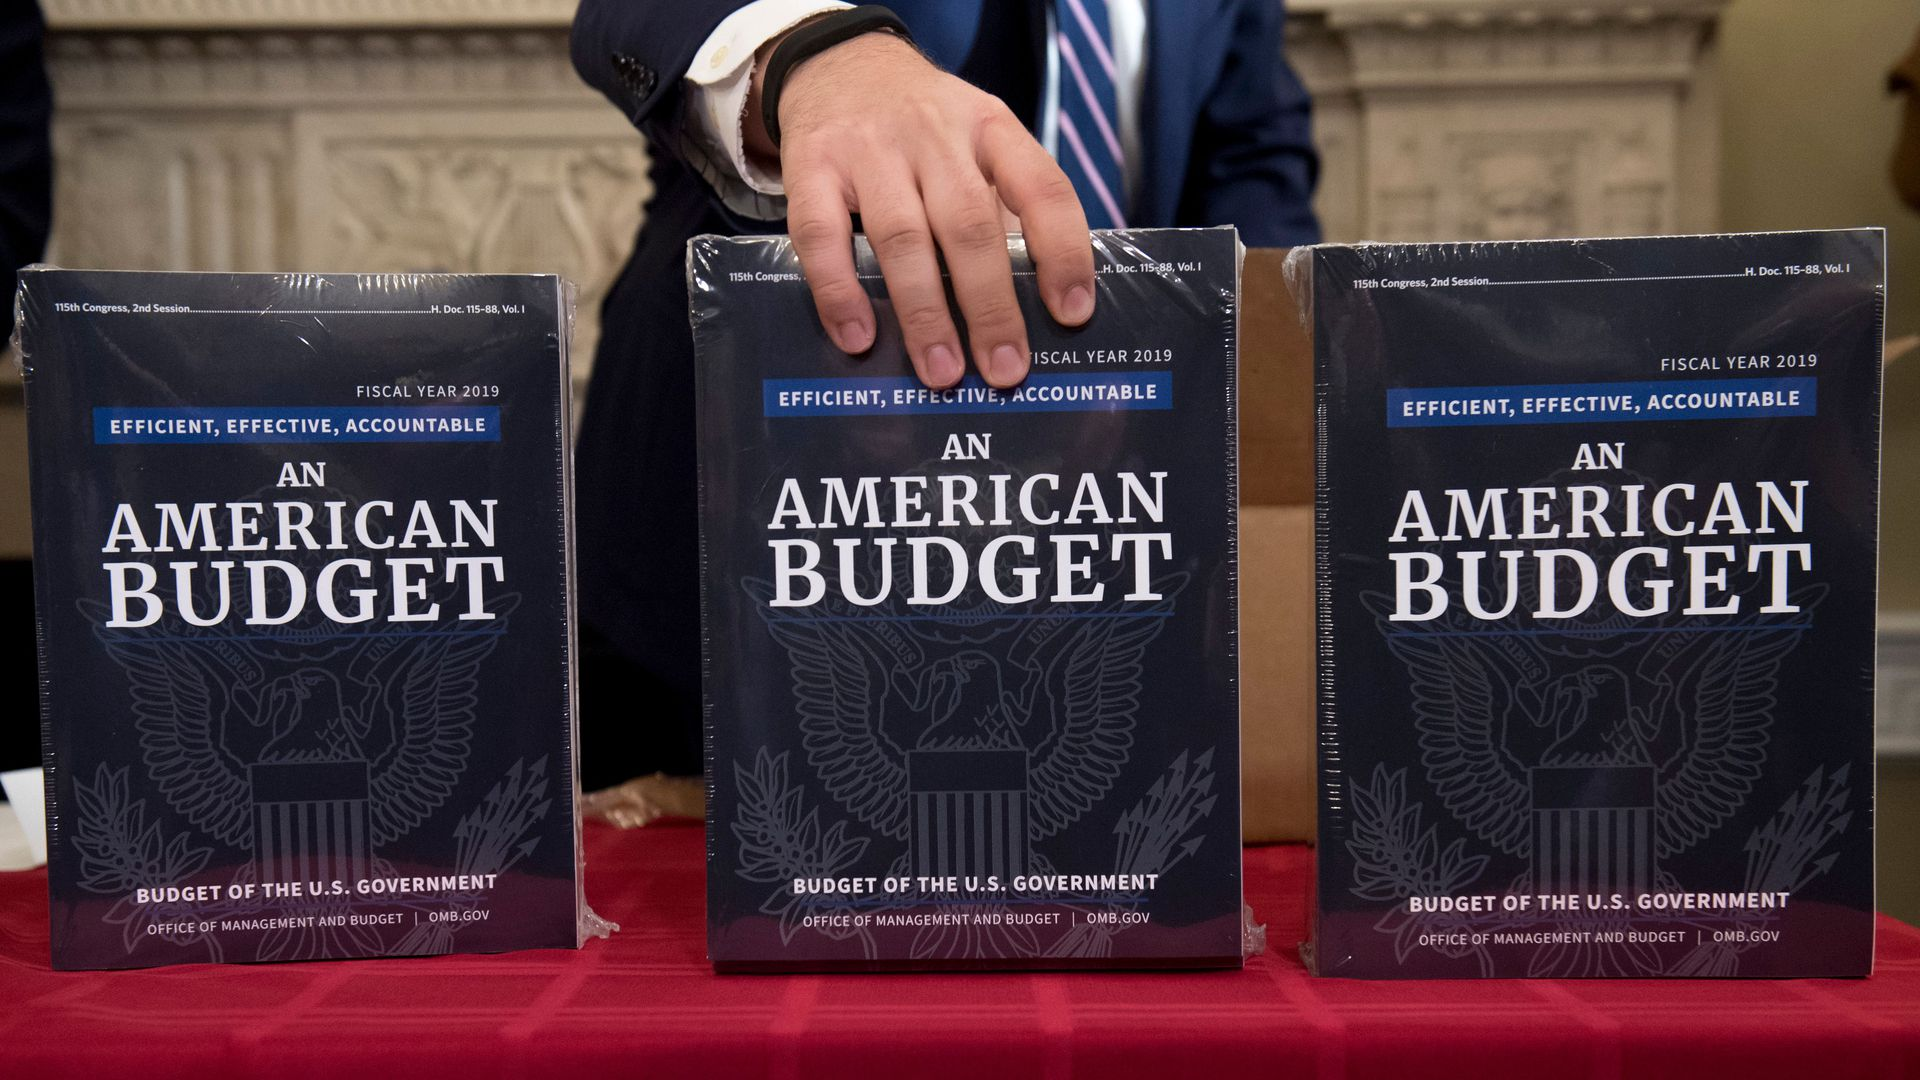 Copies of budget